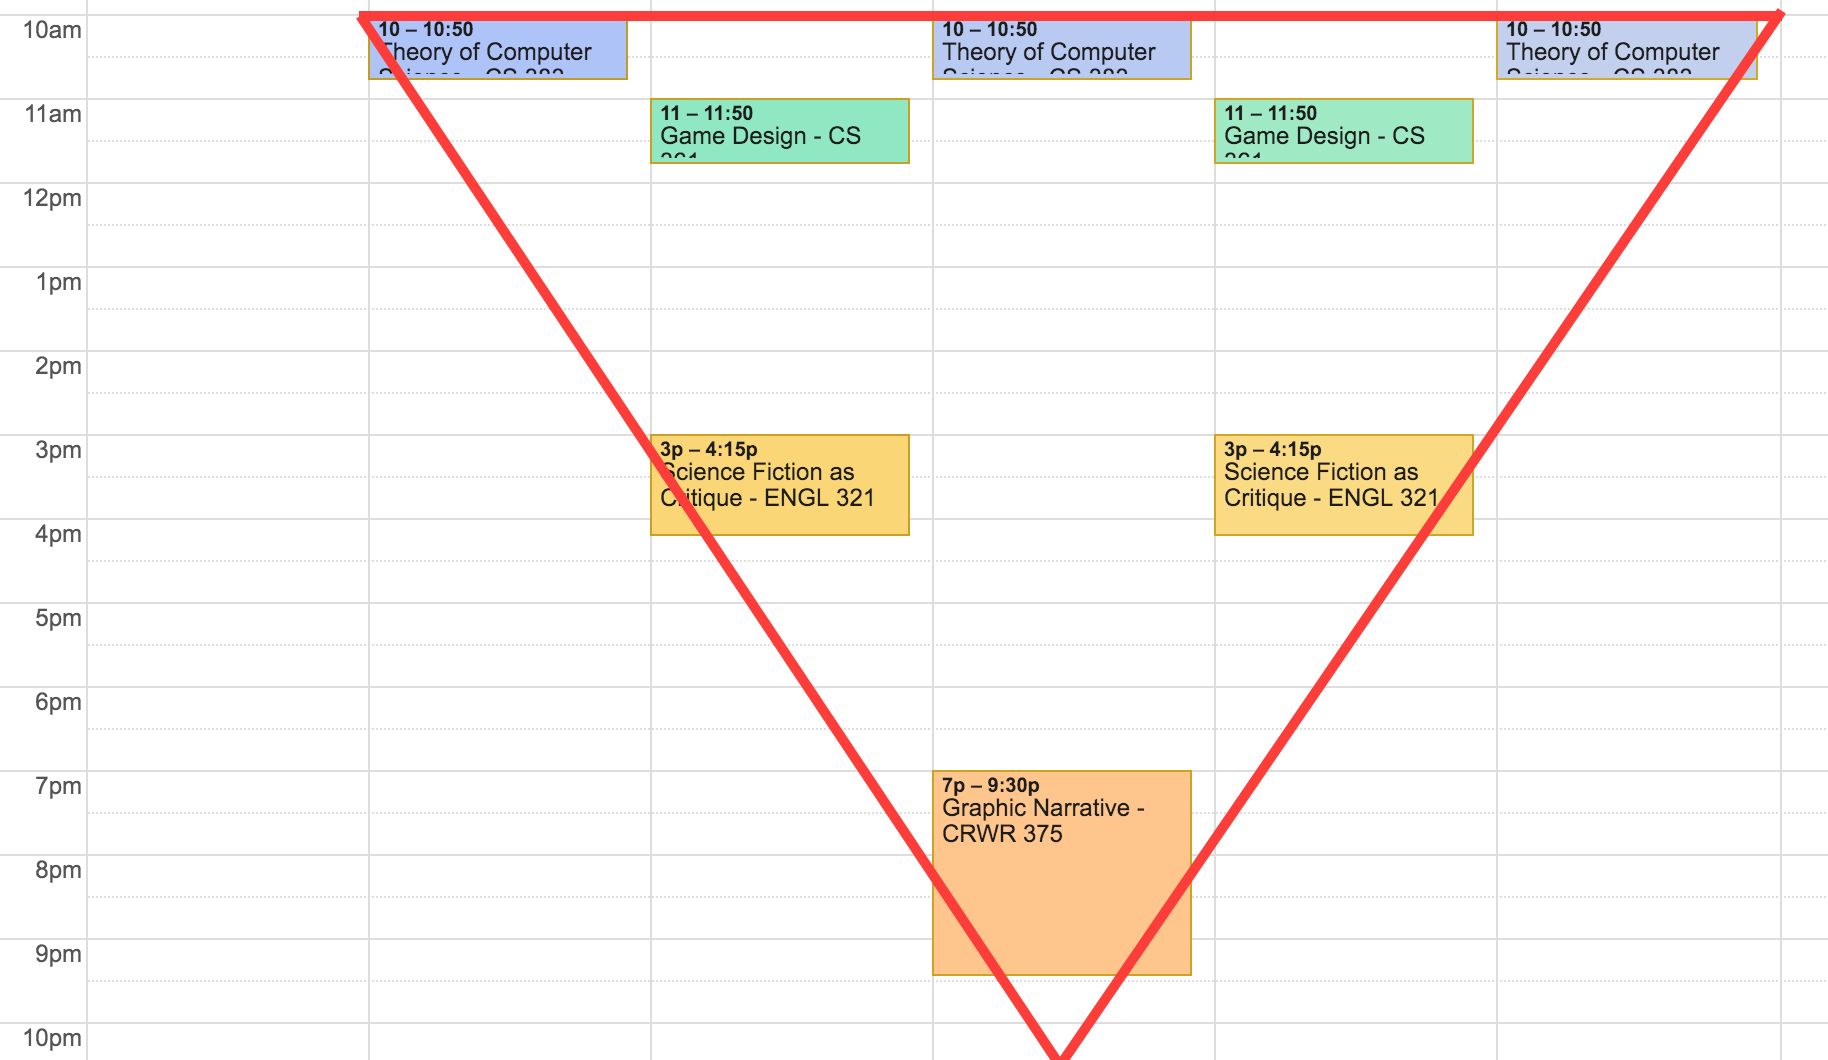 Image showing the upside-down triangle formation of my class schedule.